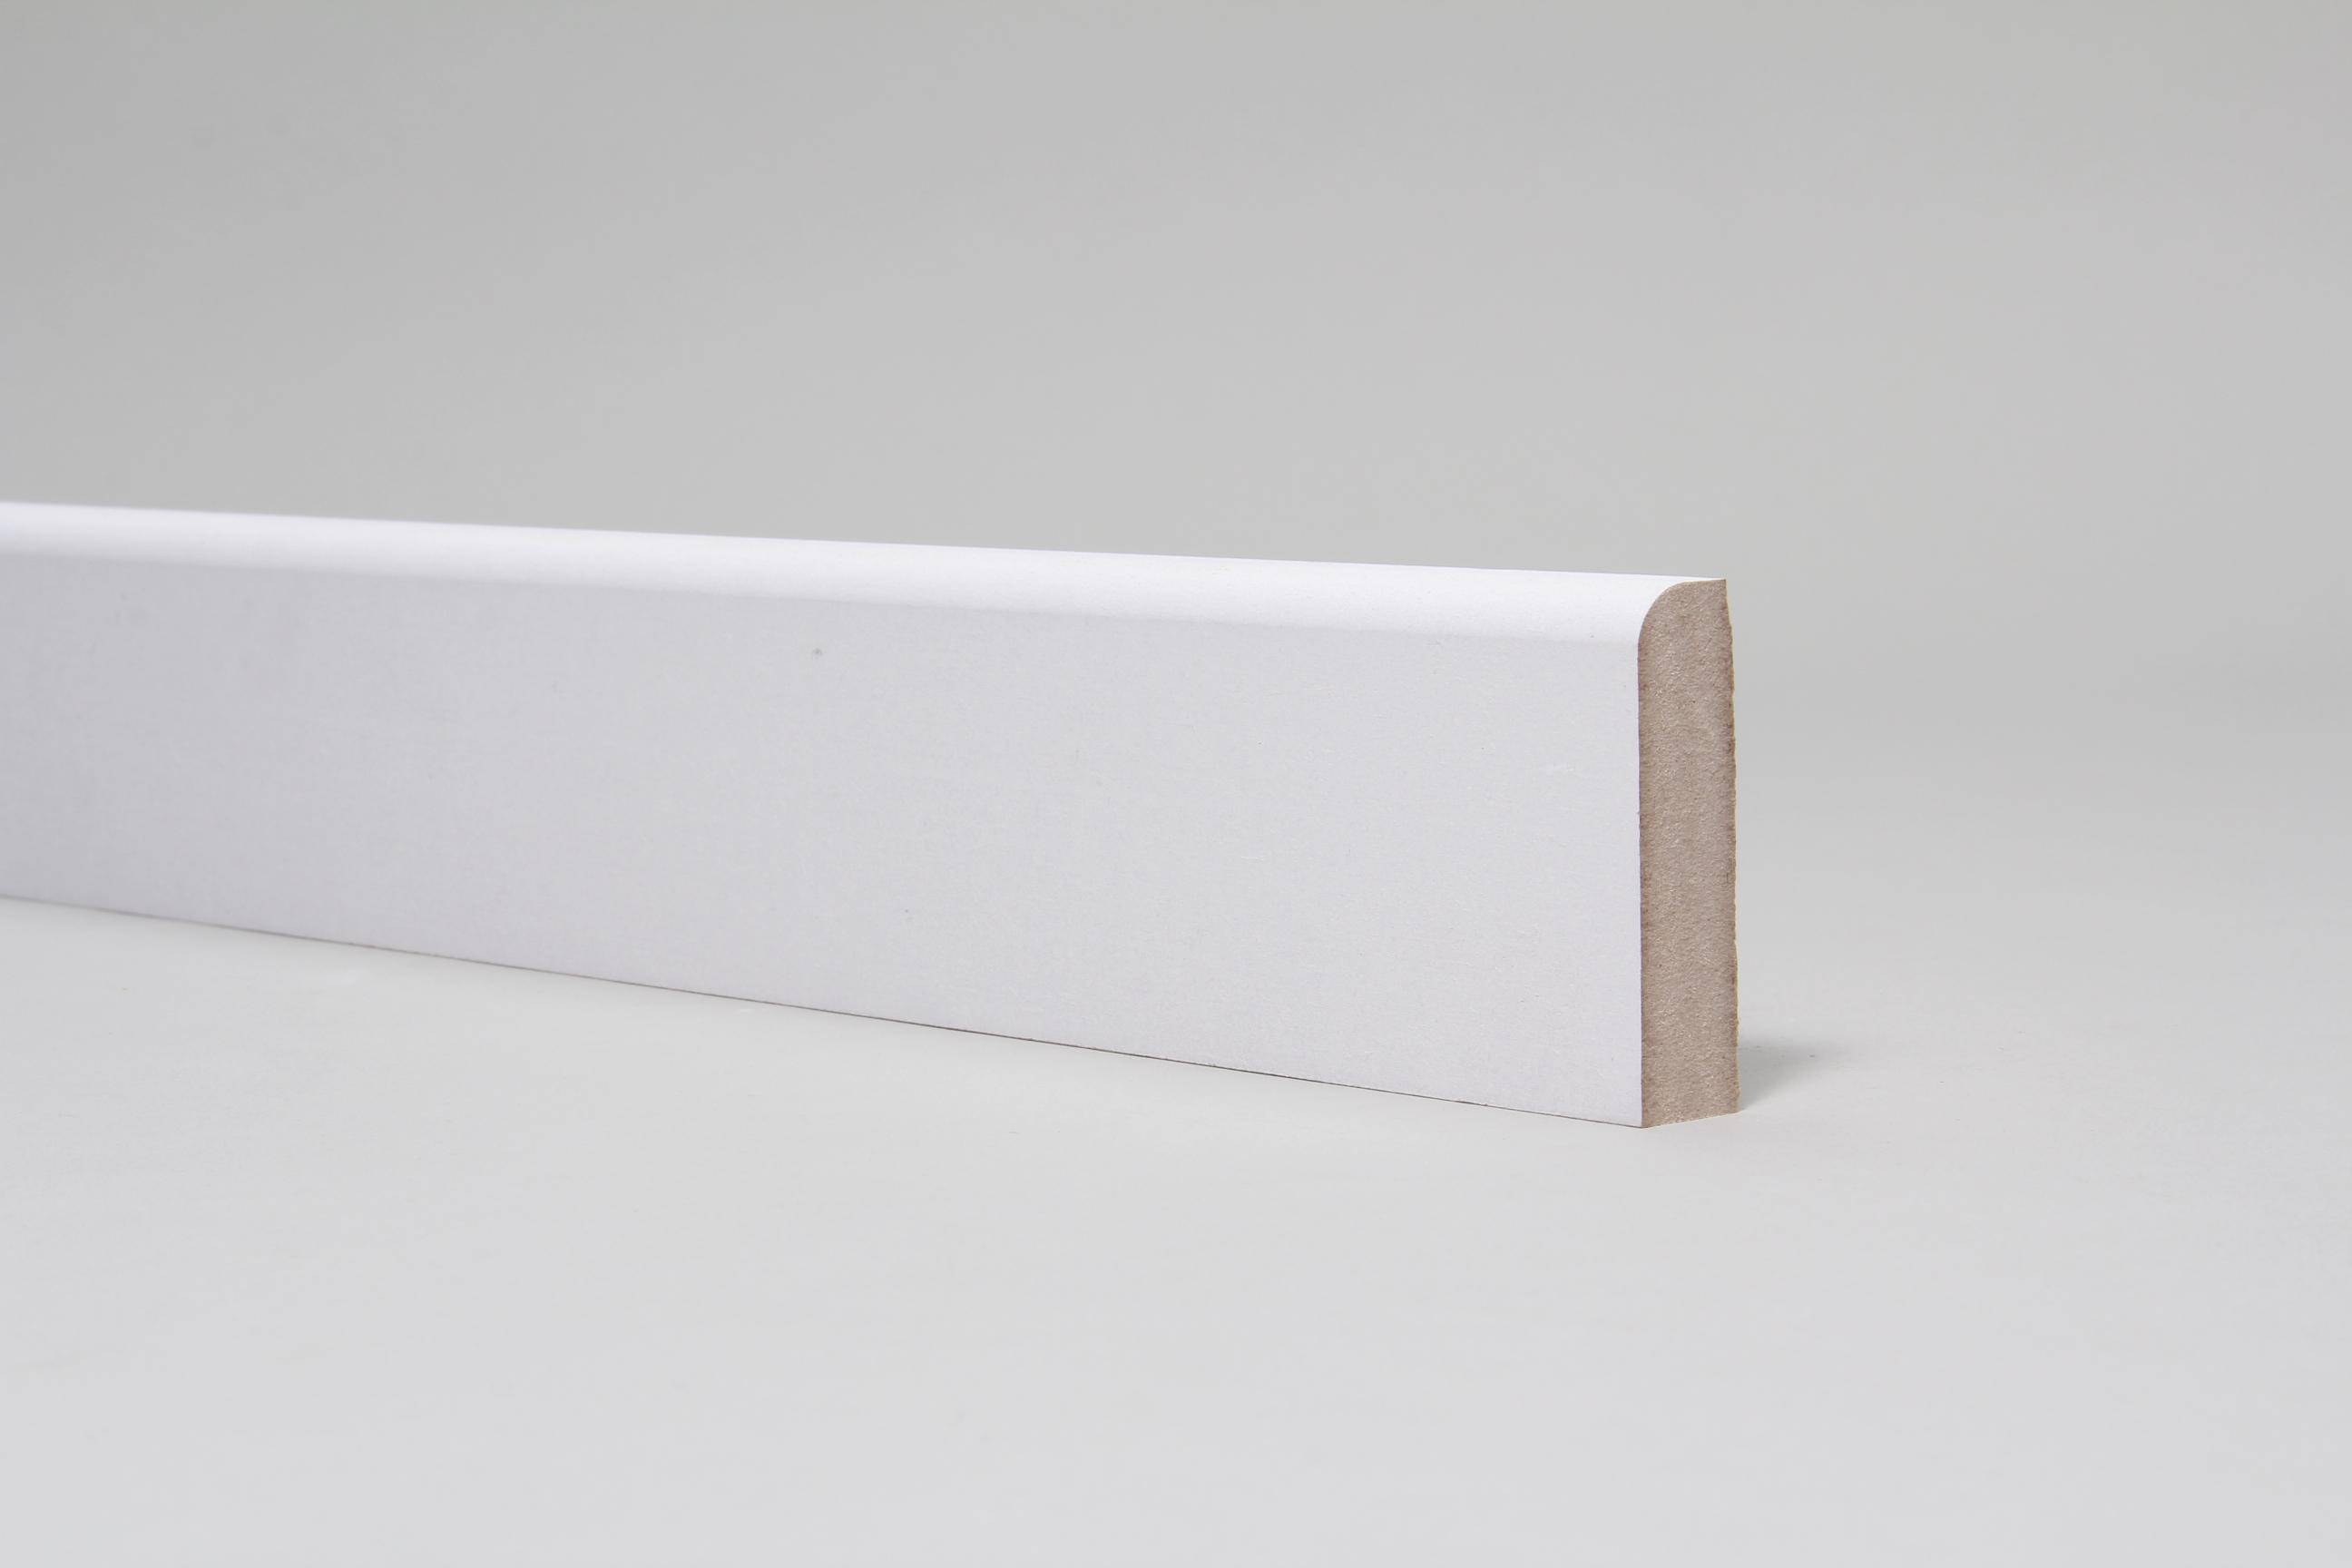 Rounded One Edge 18mm x 68mm Primed Architrave Set